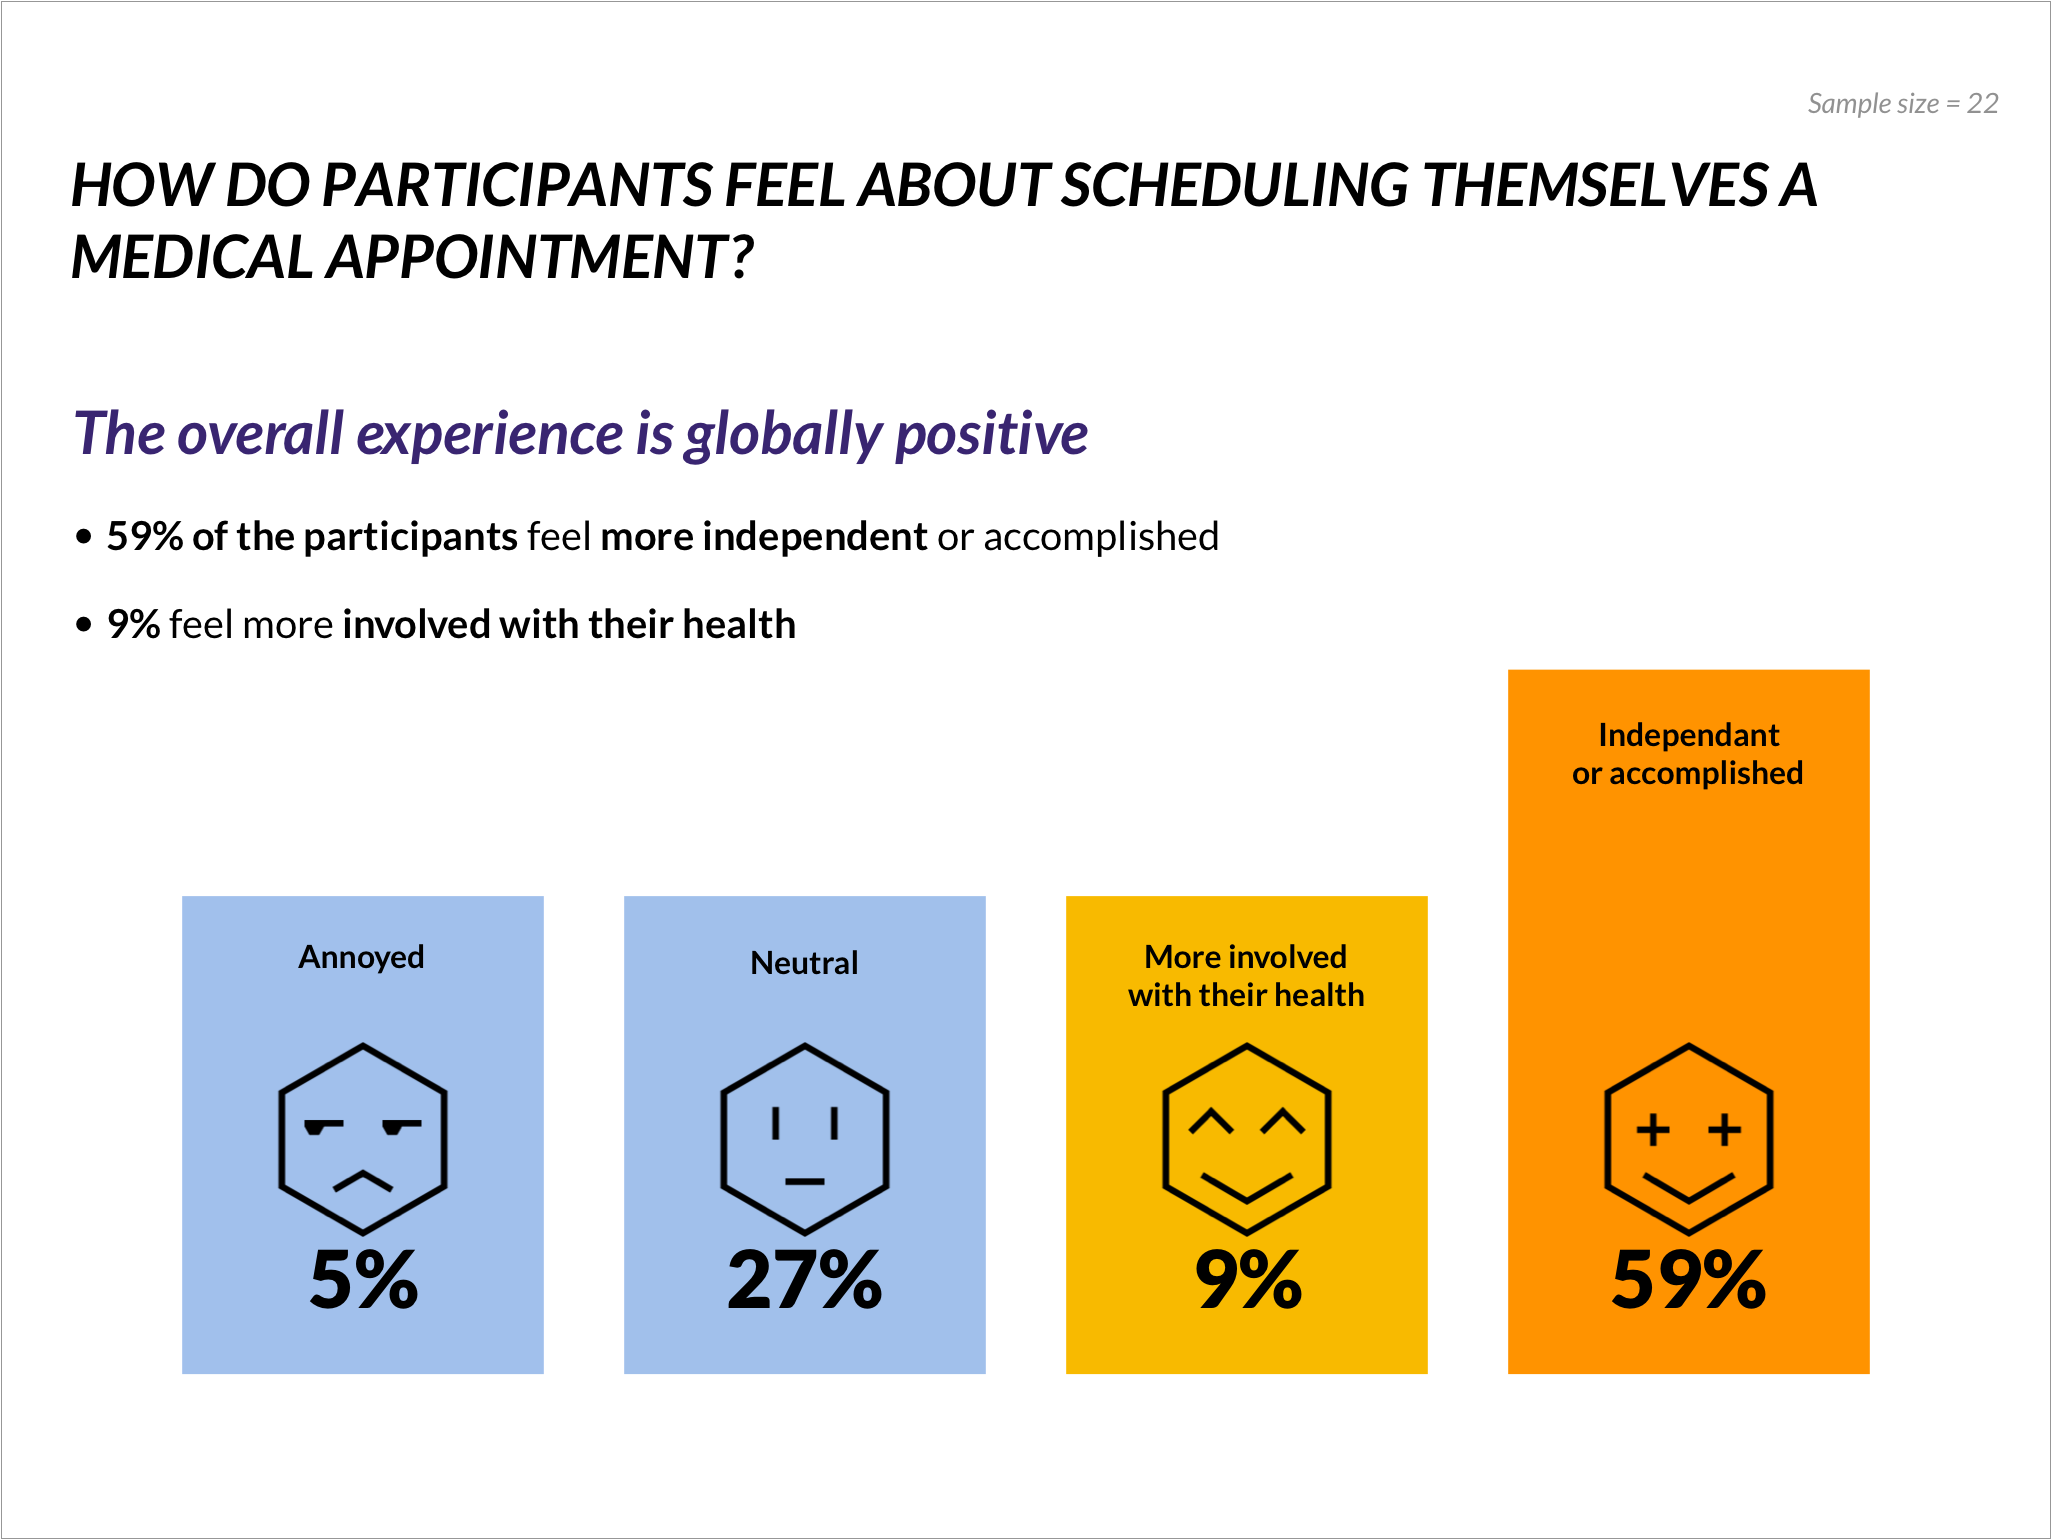 59% of the participants feel independent or accomplished when they schedule themselves a medical appointment